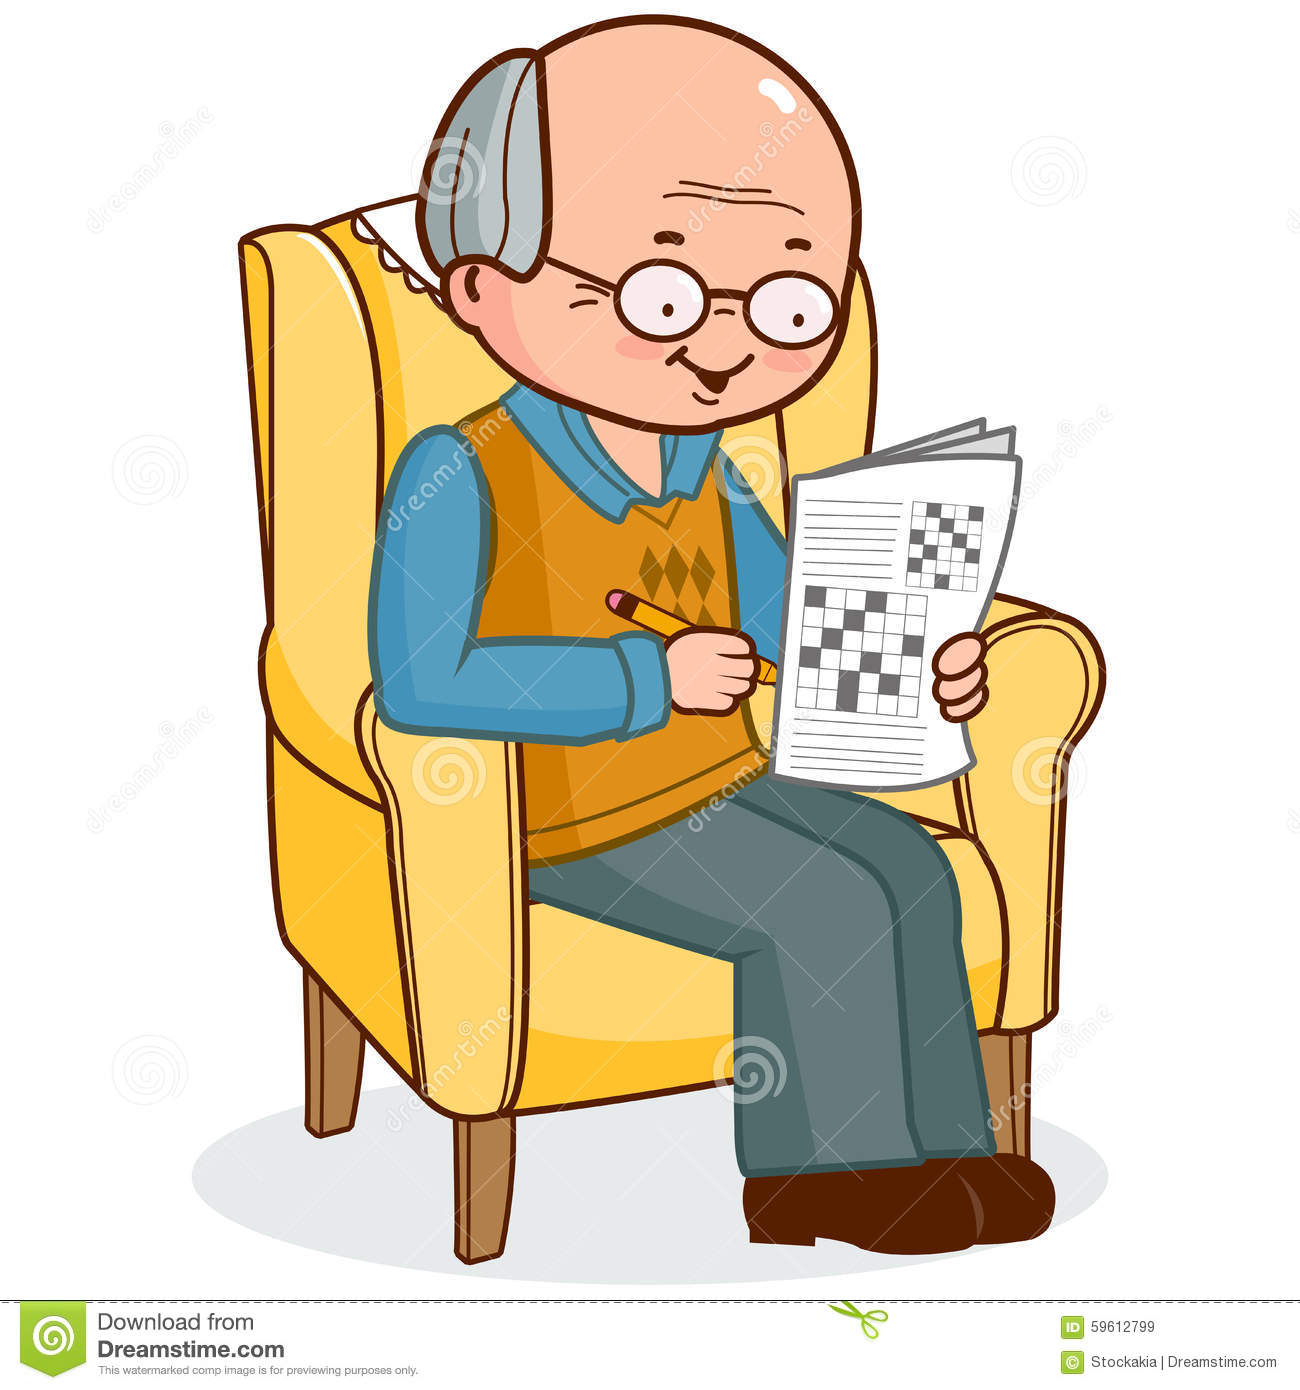 Armchair Design Old Man In Armchair Solving A Crossword Puzzle Stock